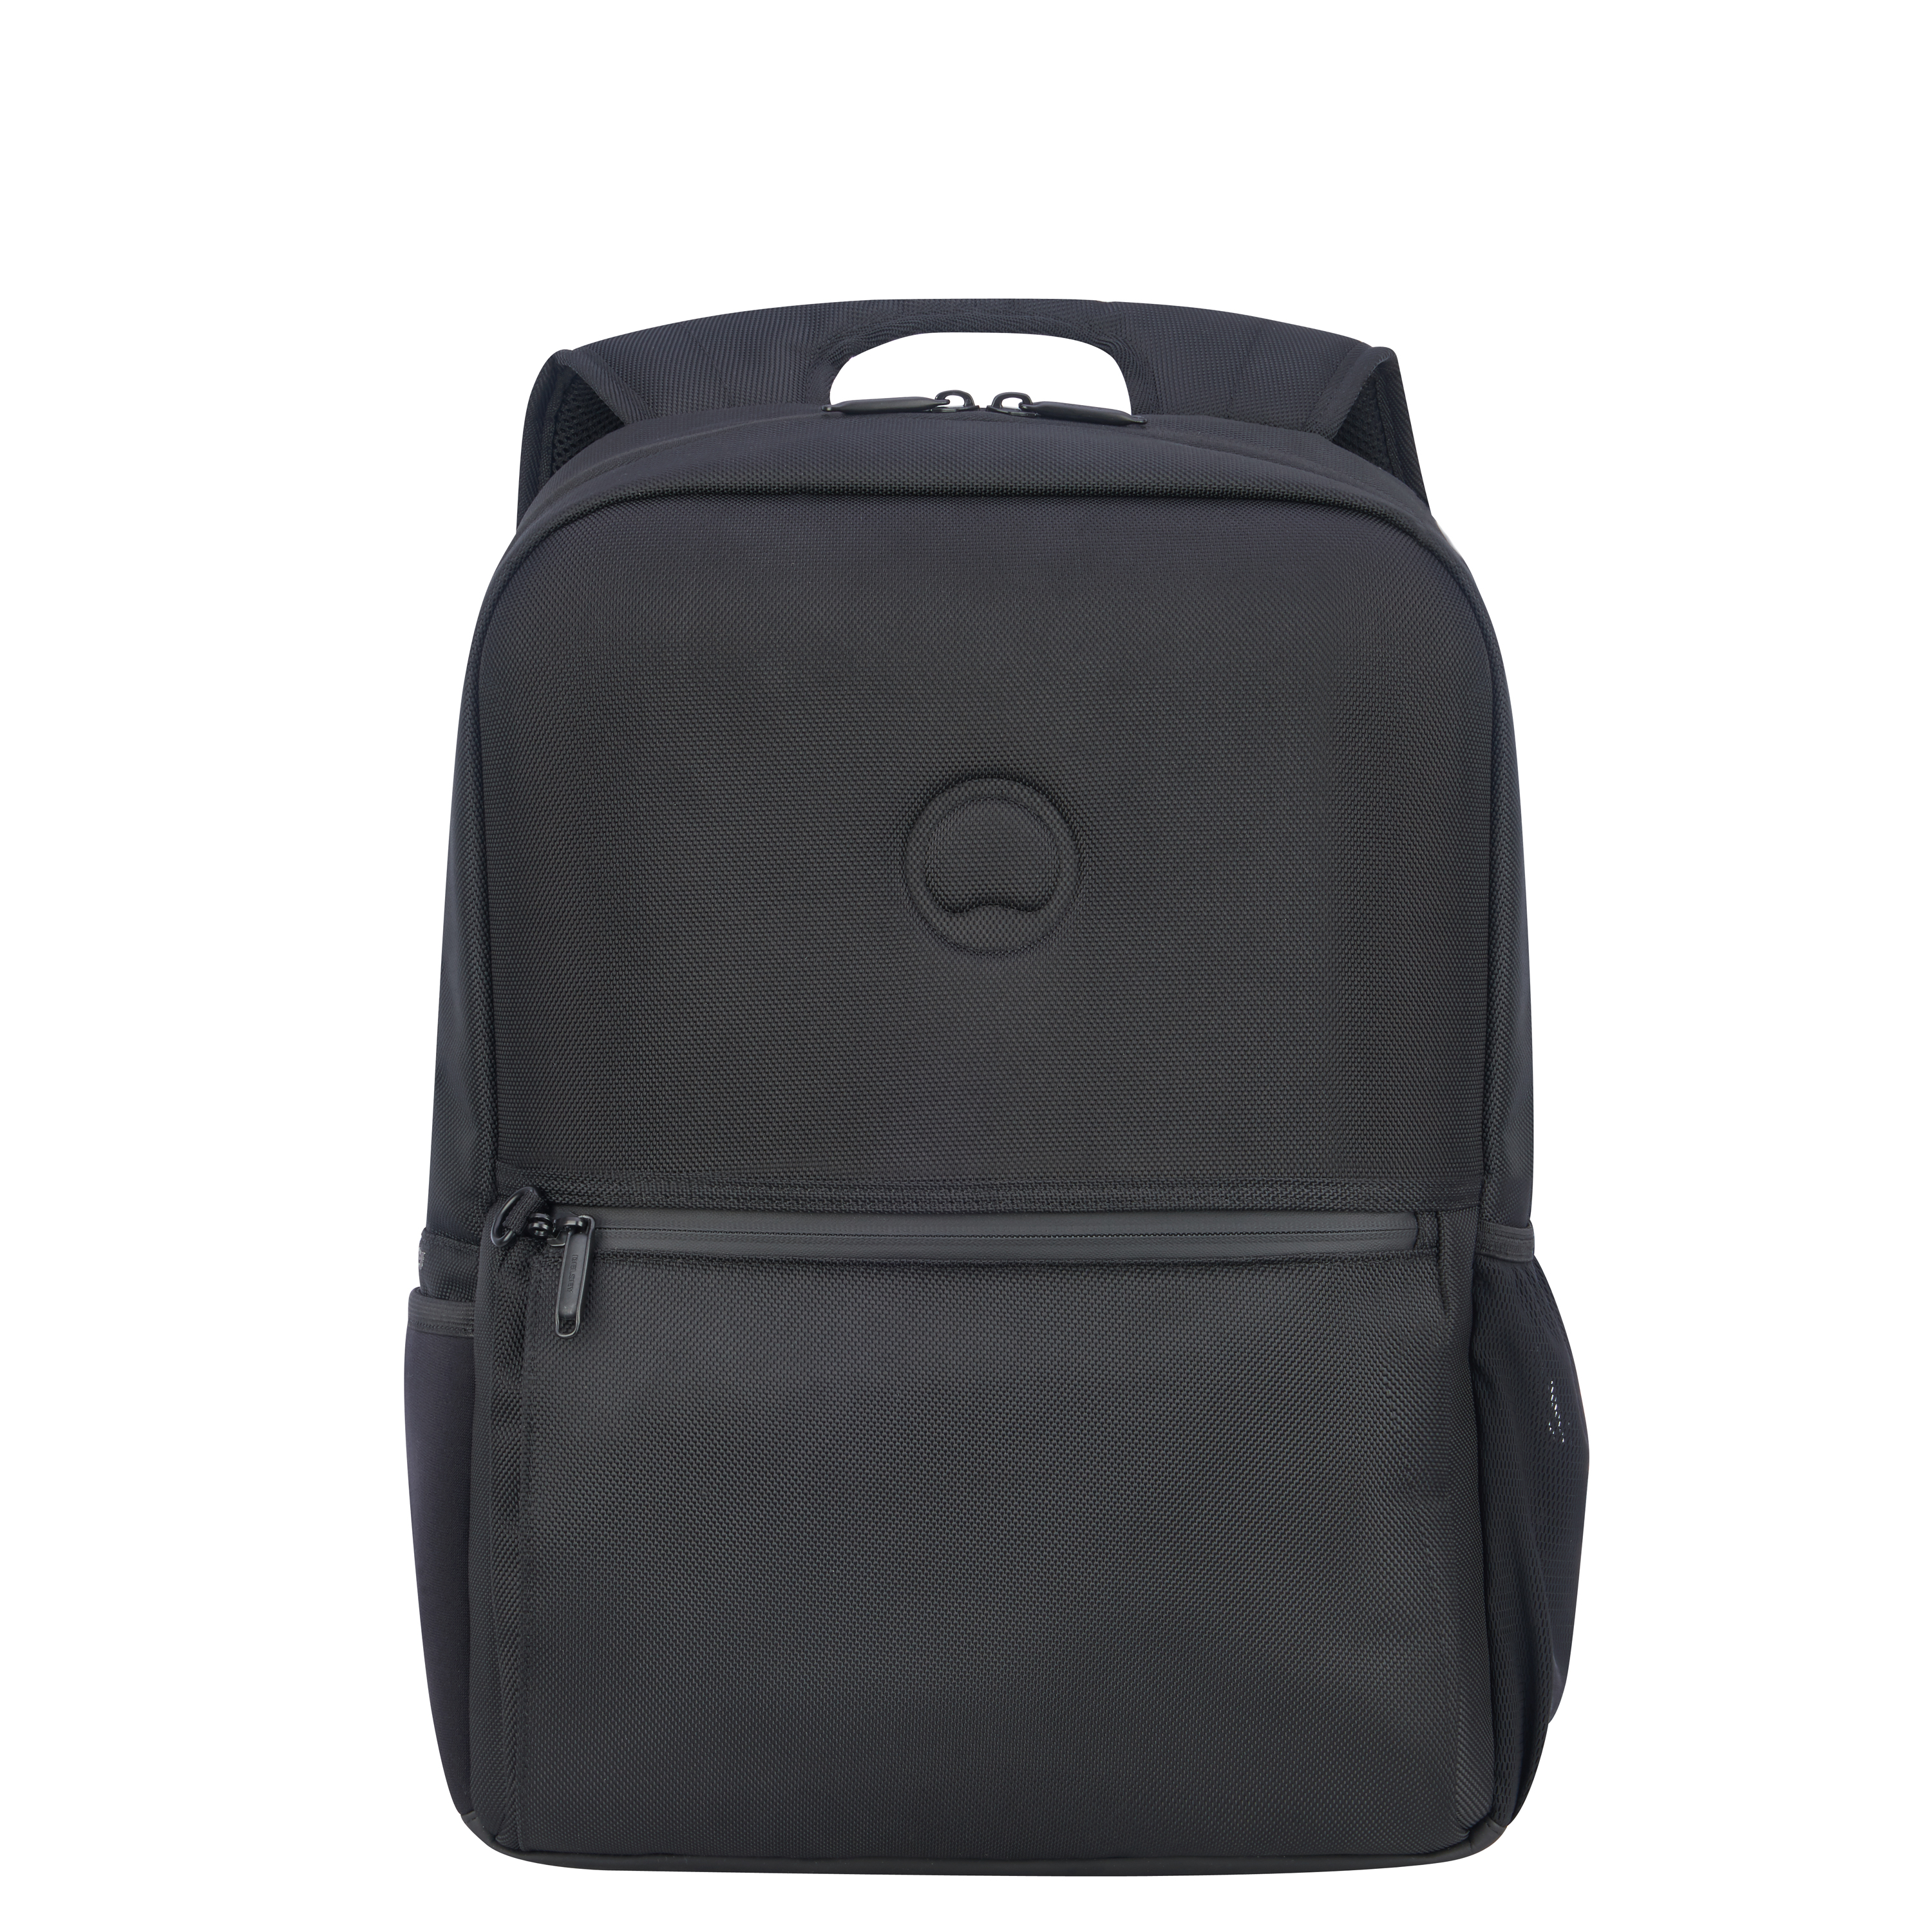 "Dvoukomorový business batoh na PC 15,6"" Delsey Delsey Laumiere"